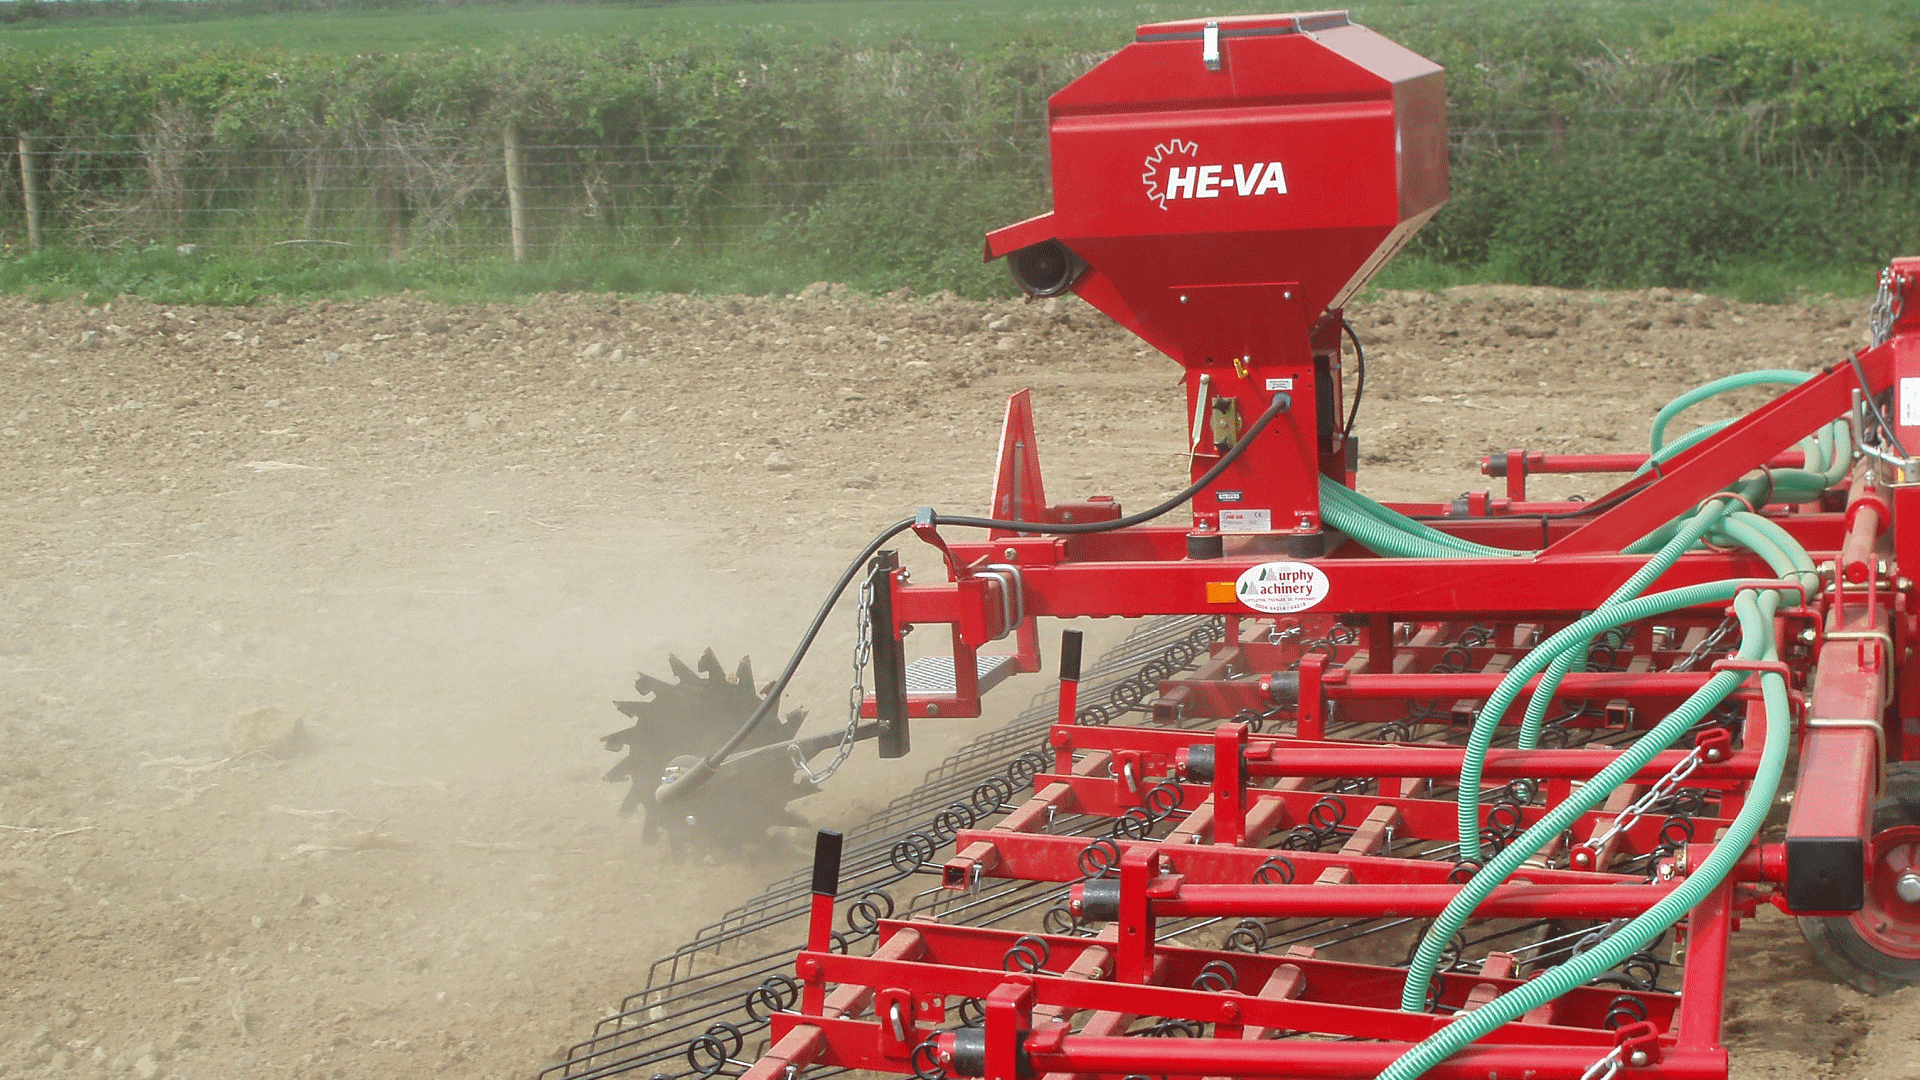 Here, the Multi-Seeder is mounted on a Weeder, which makes it possible to seed while distributing the stubble around the field.